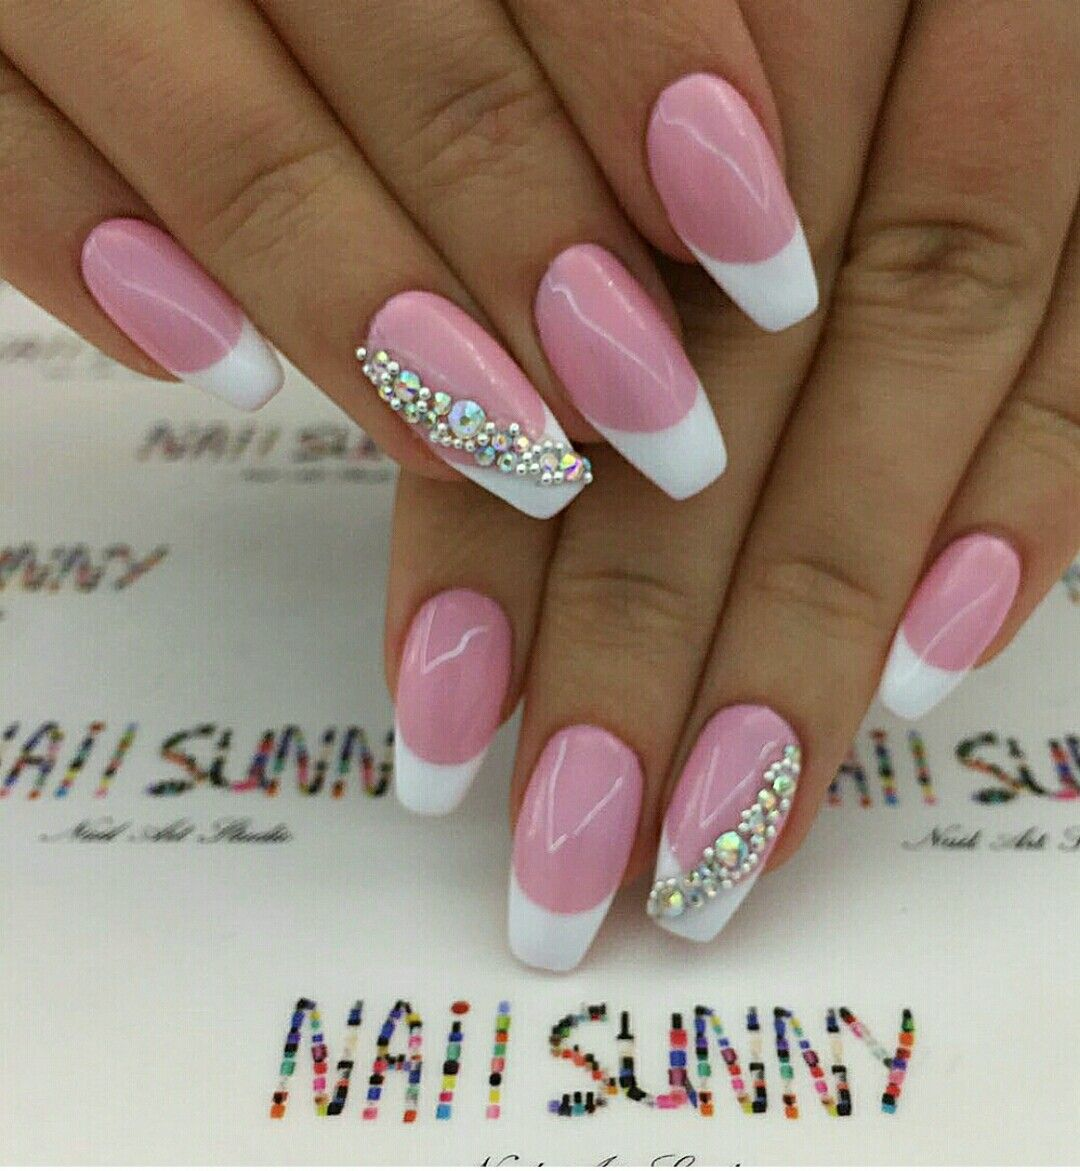 Pin by Shahidah Phillips on nail designs | Pinterest | Ongles and ...